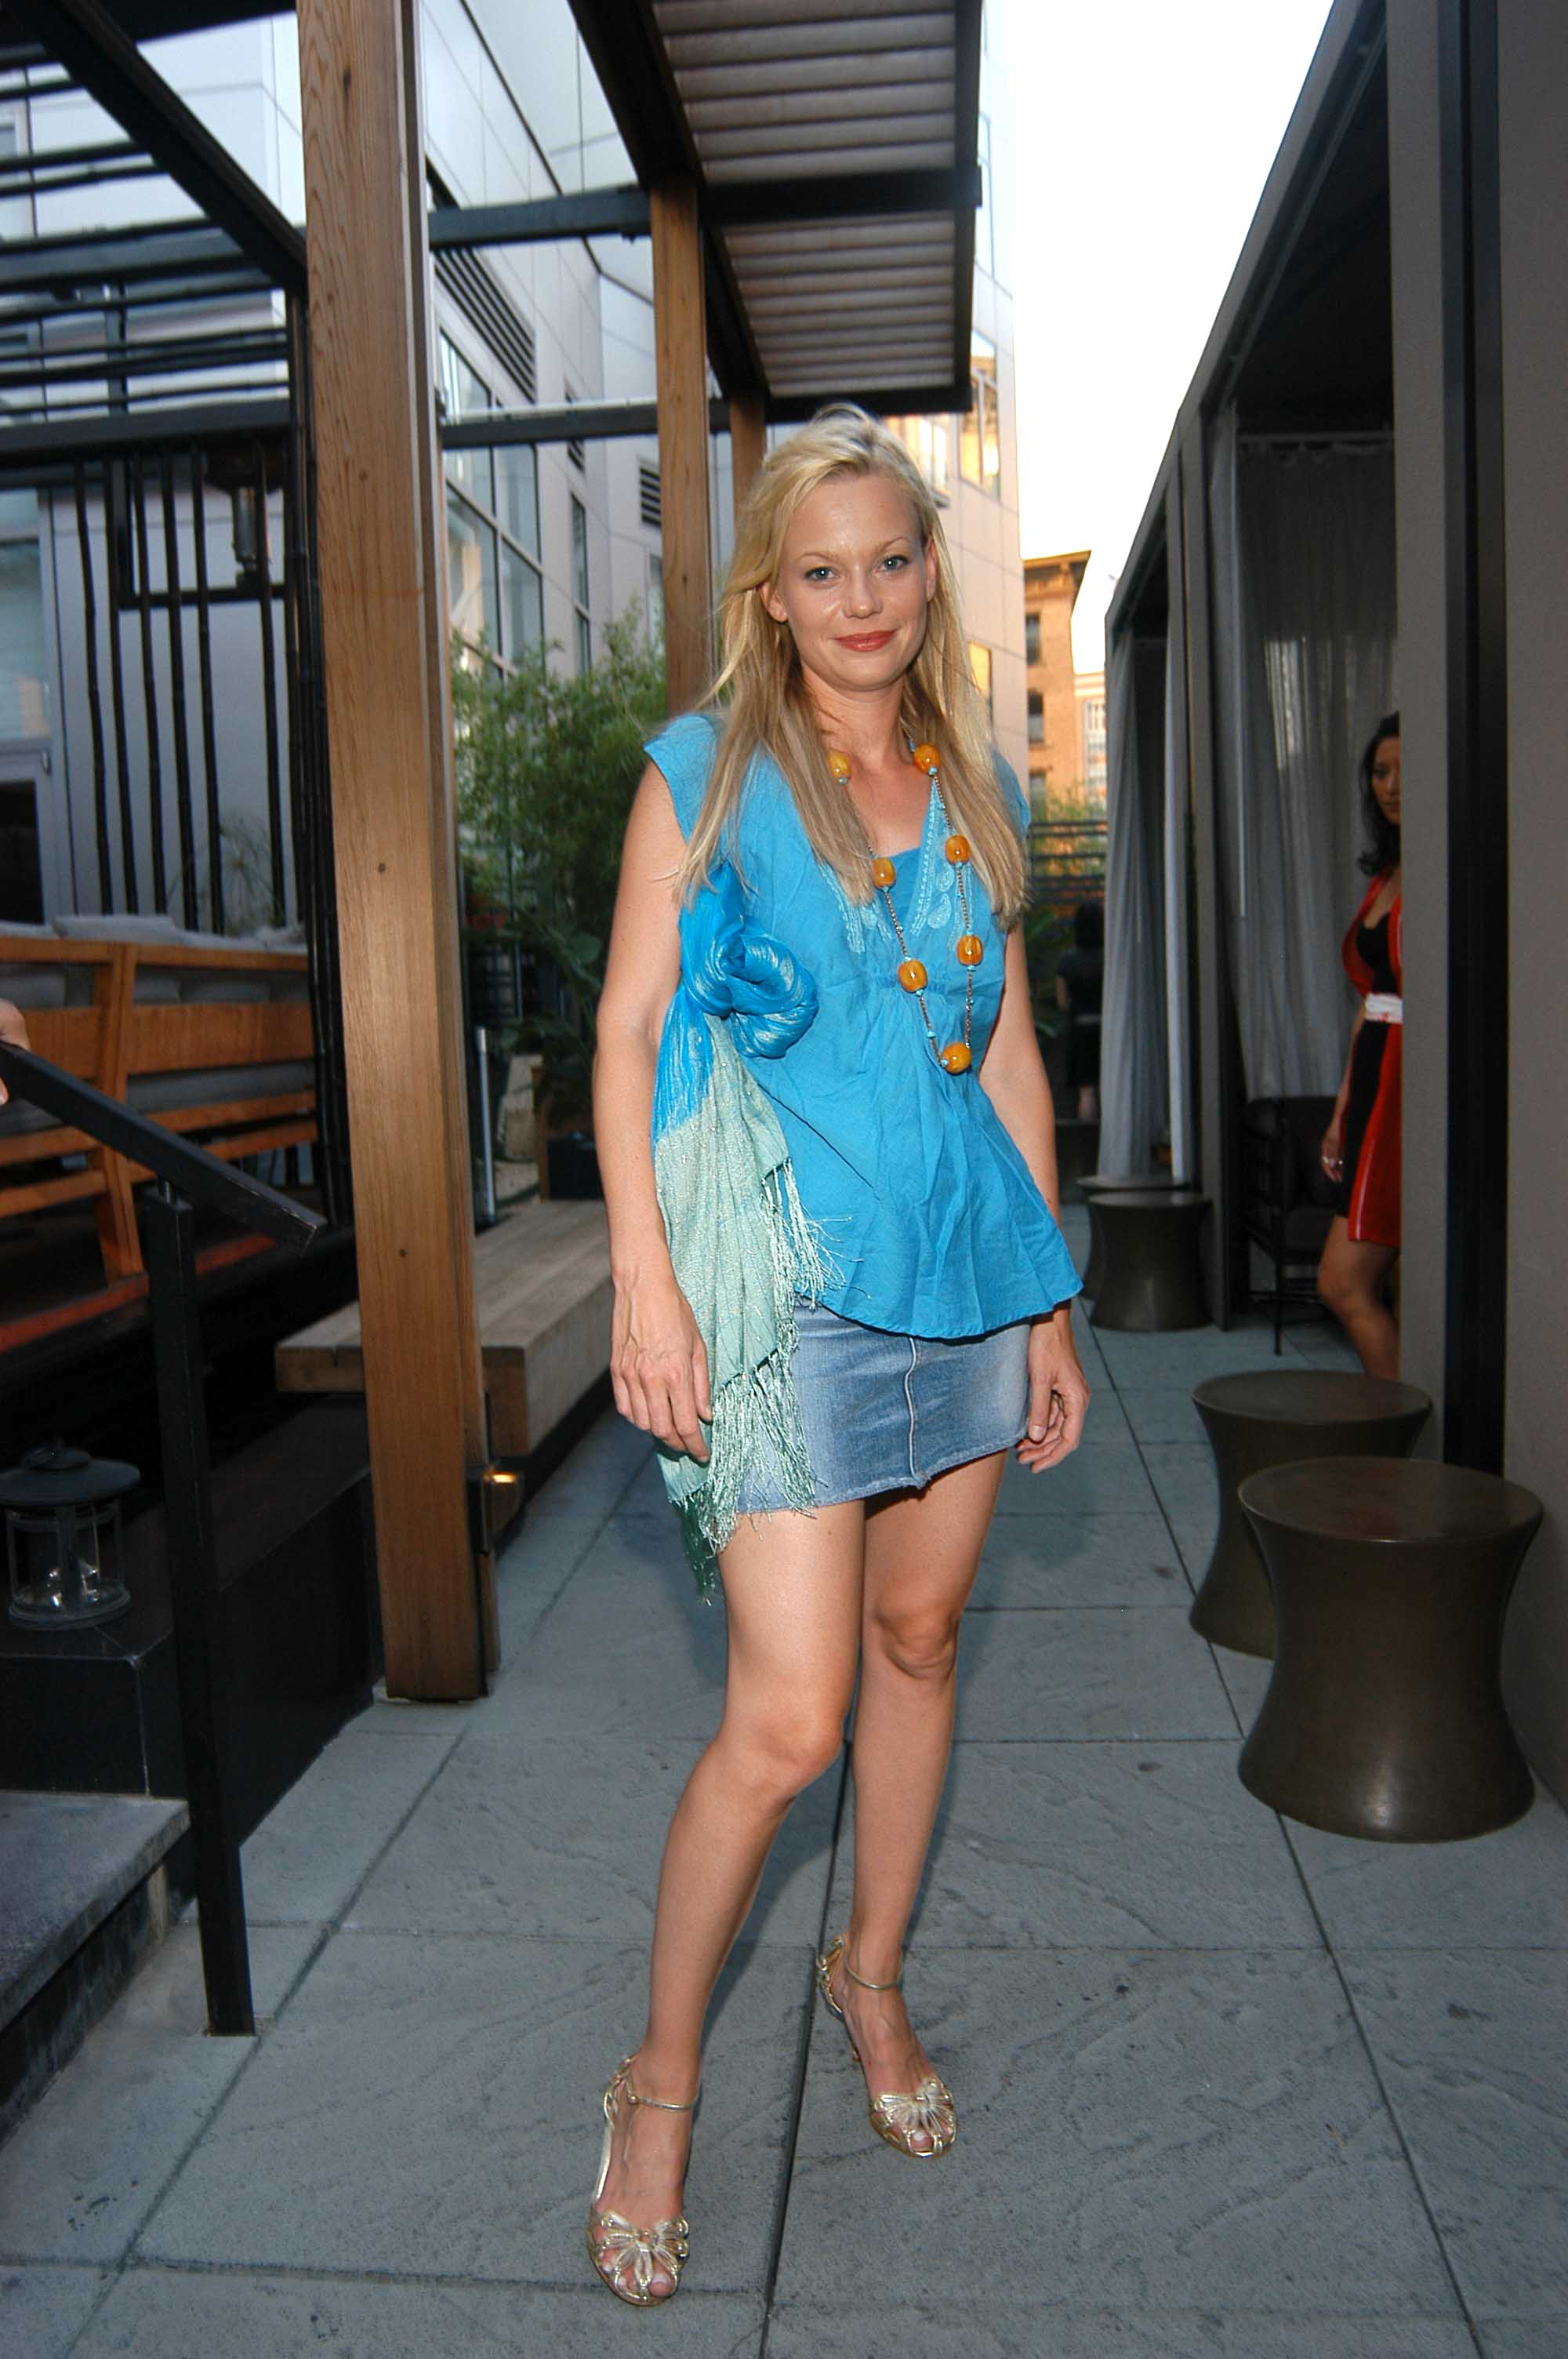 Samantha Mathis - Photo Colection